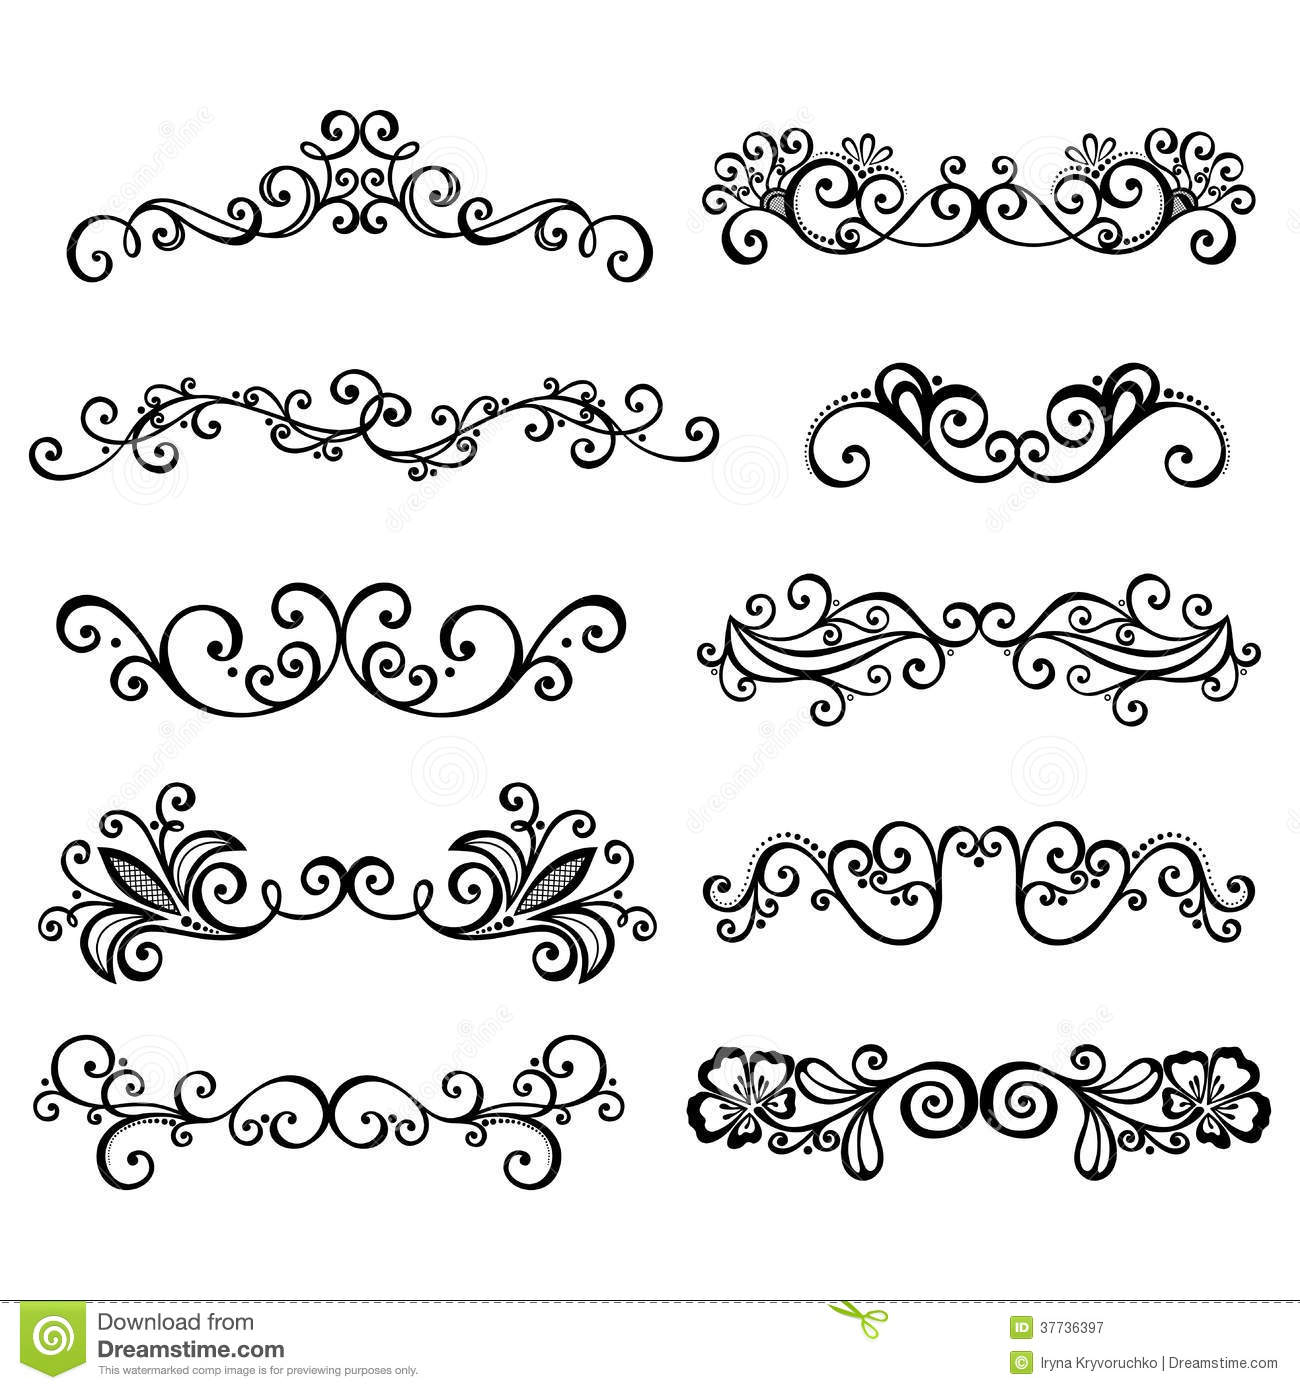 Calligraphic borders anctor d page decoration royalty free for Decoration page